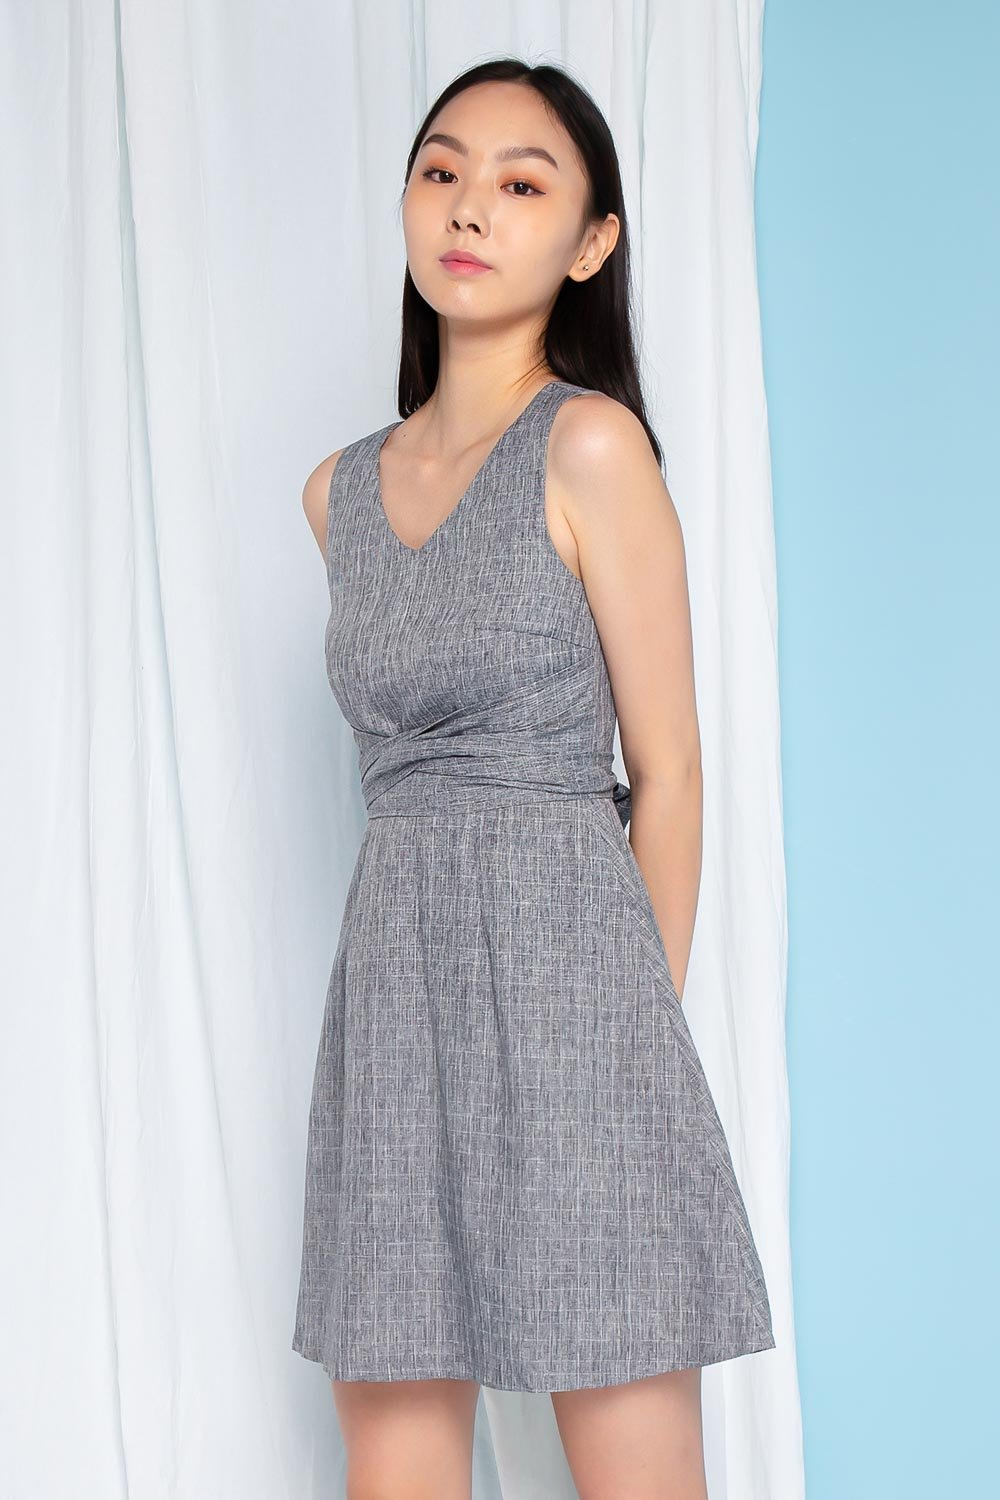 MONICA GREY GRID SASH DRESS